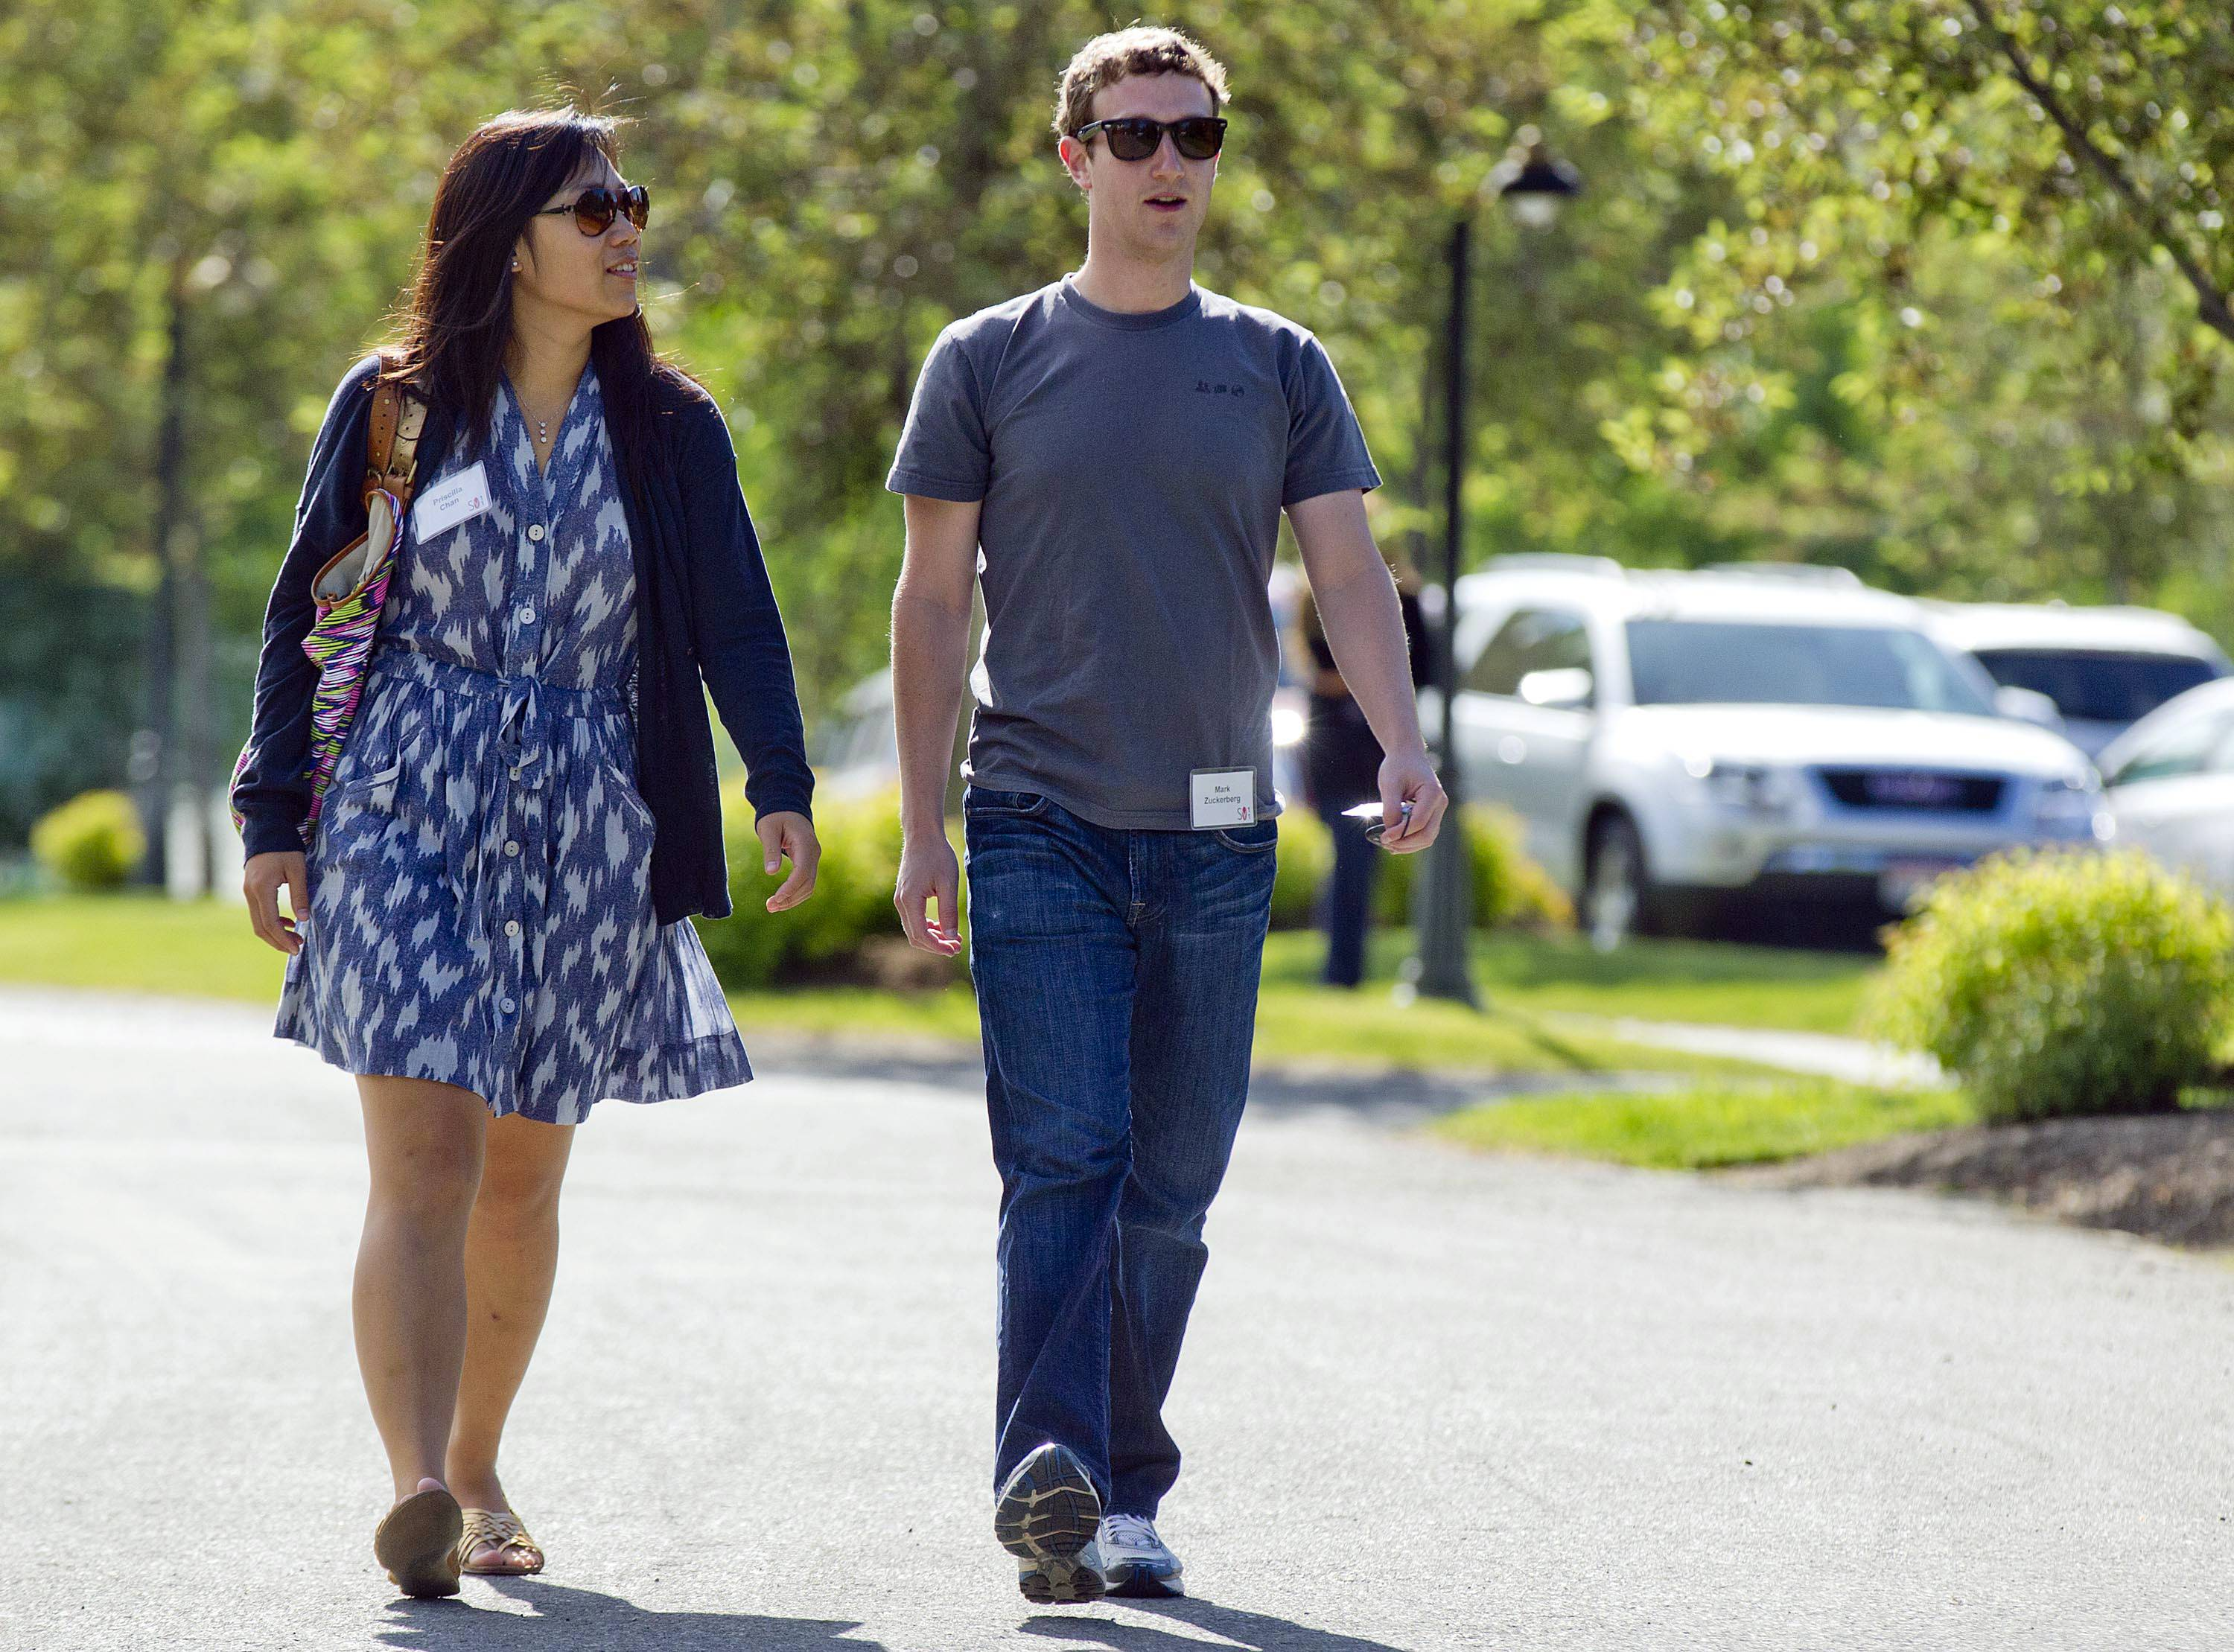 Facebook's Mark Zuckerberg and his wife, Priscilla Chan, announced Thursday May 29, 2014 they are donating $120 million to the San Francisco Bay Area's public school system.